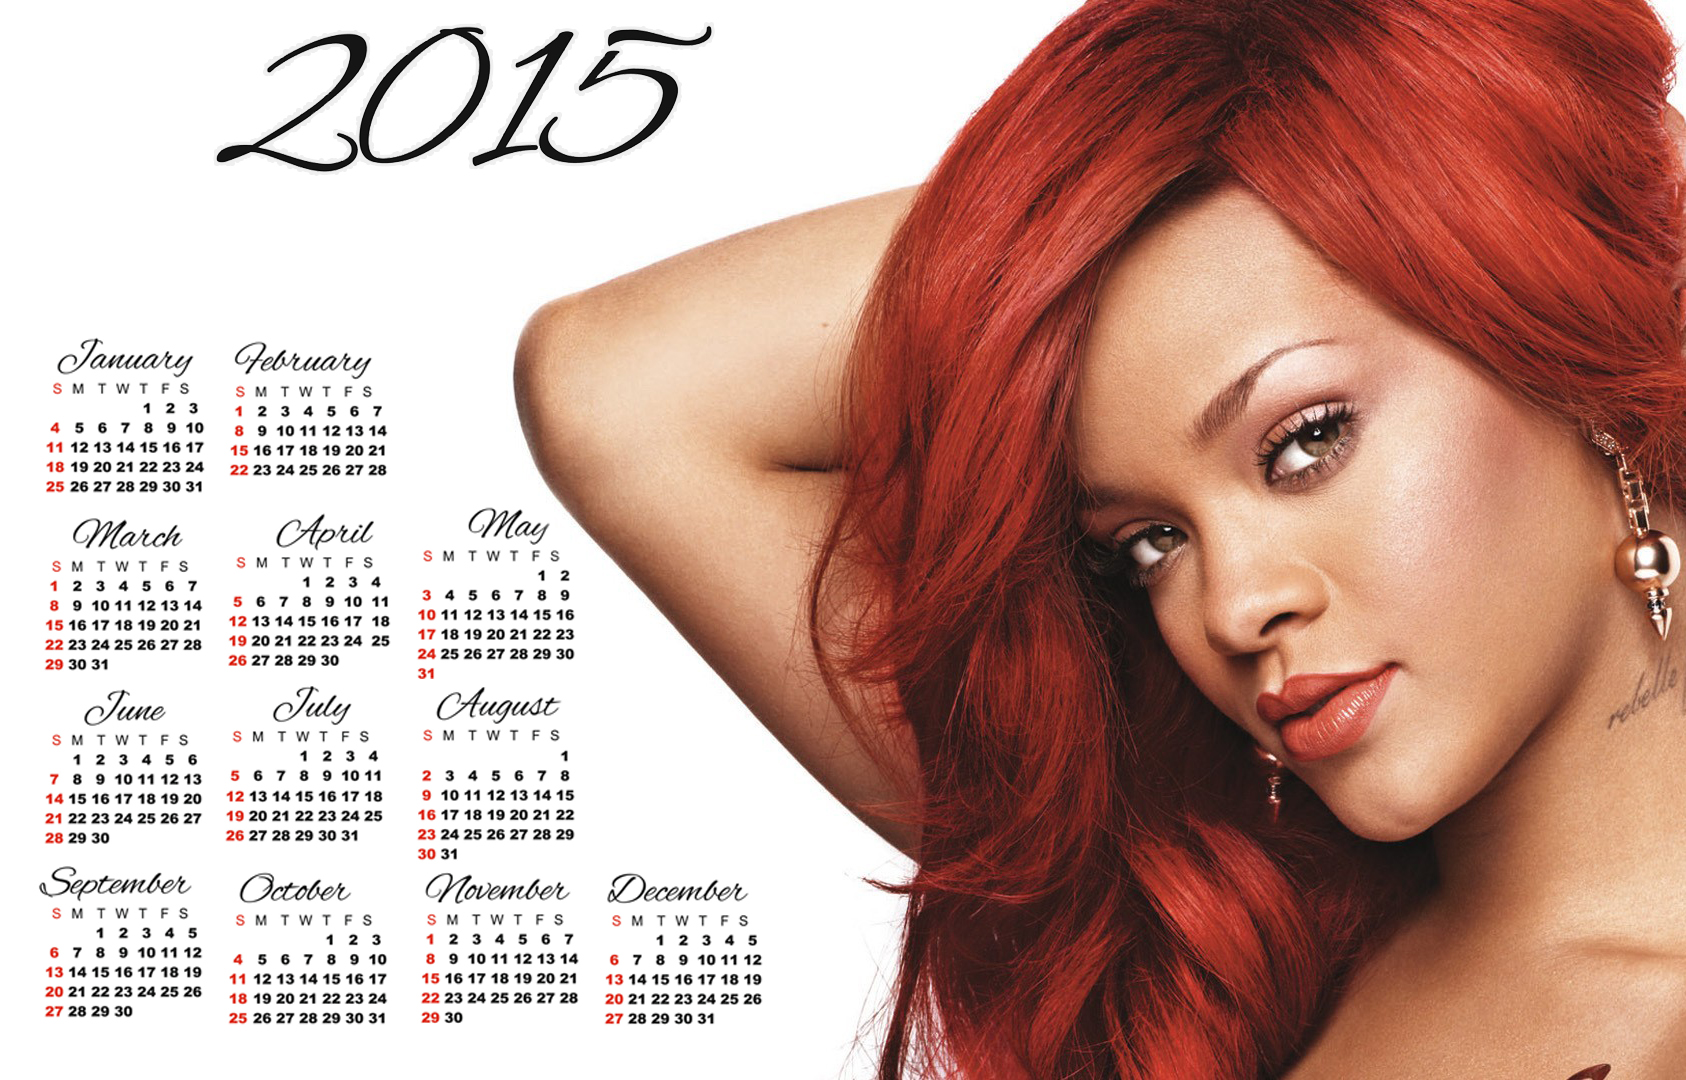 rihanna red long hair wallpaper calendar 2015